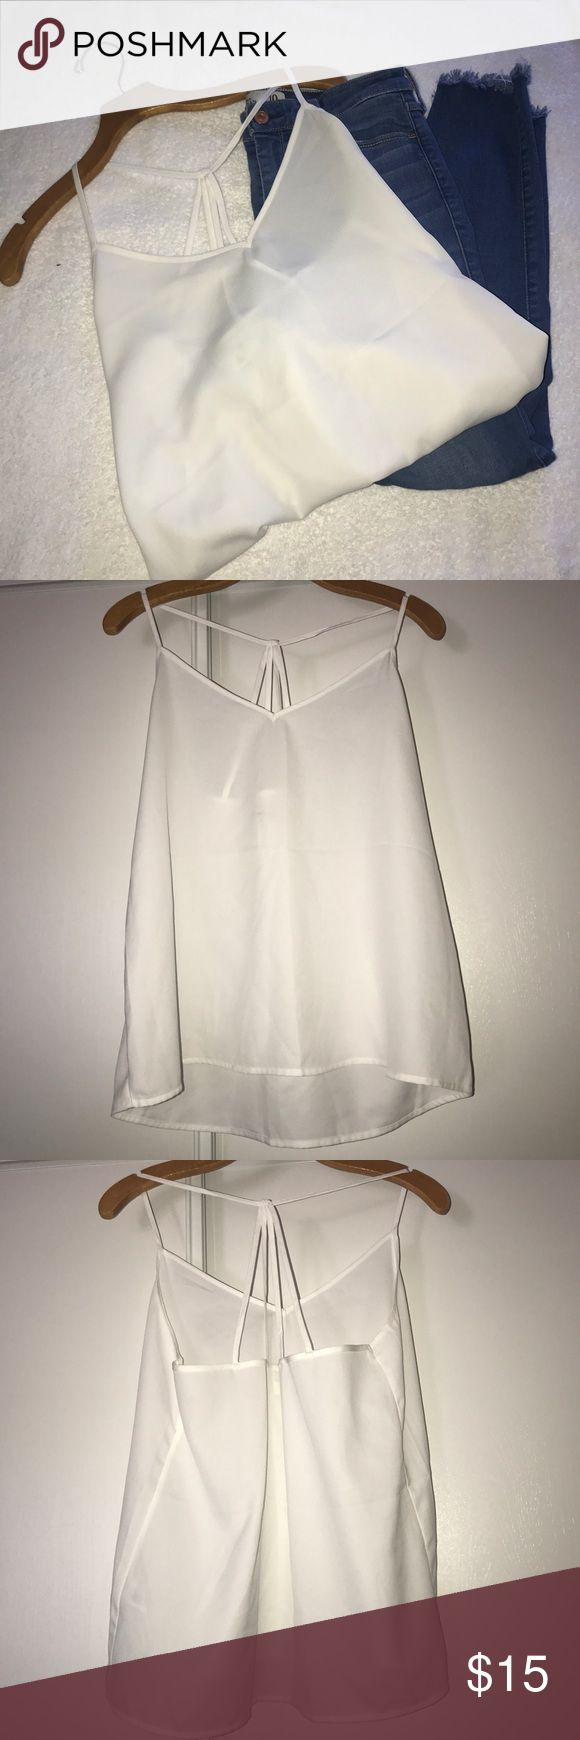 NWOT A&F White Blouse A&F white blouse. Brand new without tags. Size large. No trades and no modeling. Abercrombie & Fitch Tops Blouses